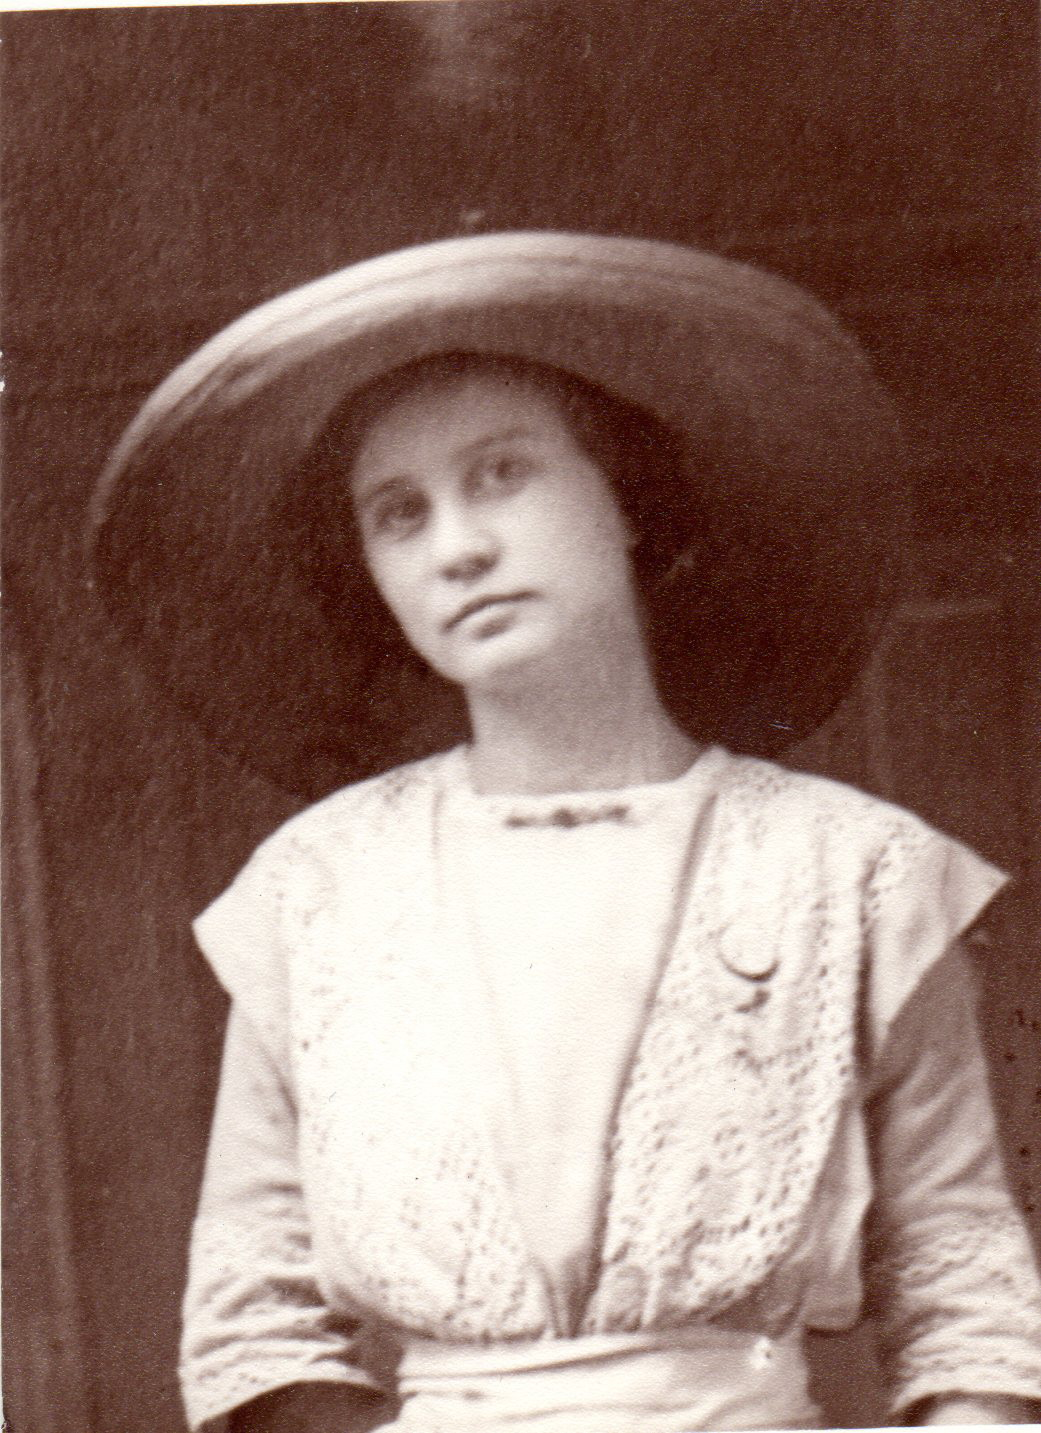 Ethel Wright